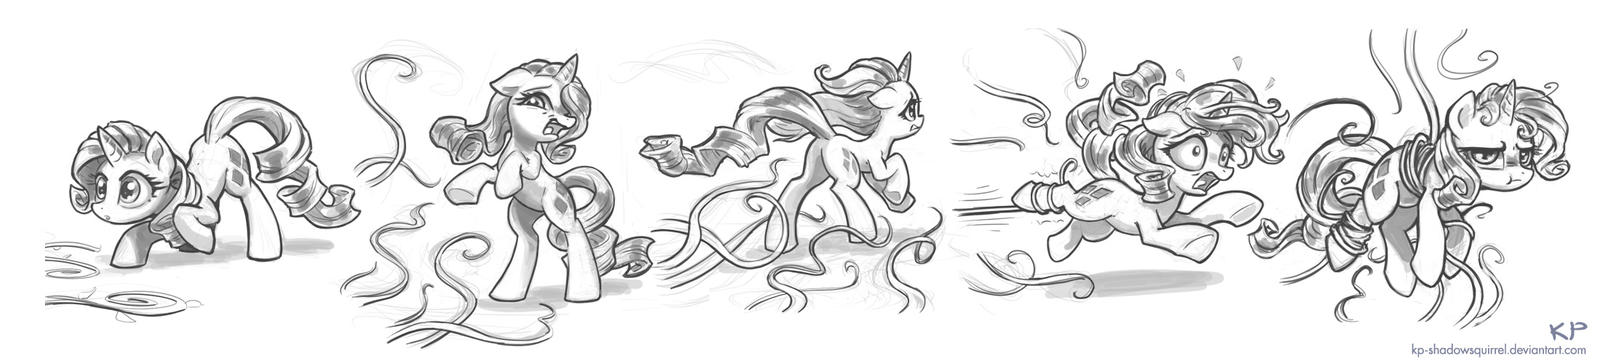 Rarity Sketches #6 by KP-ShadowSquirrel